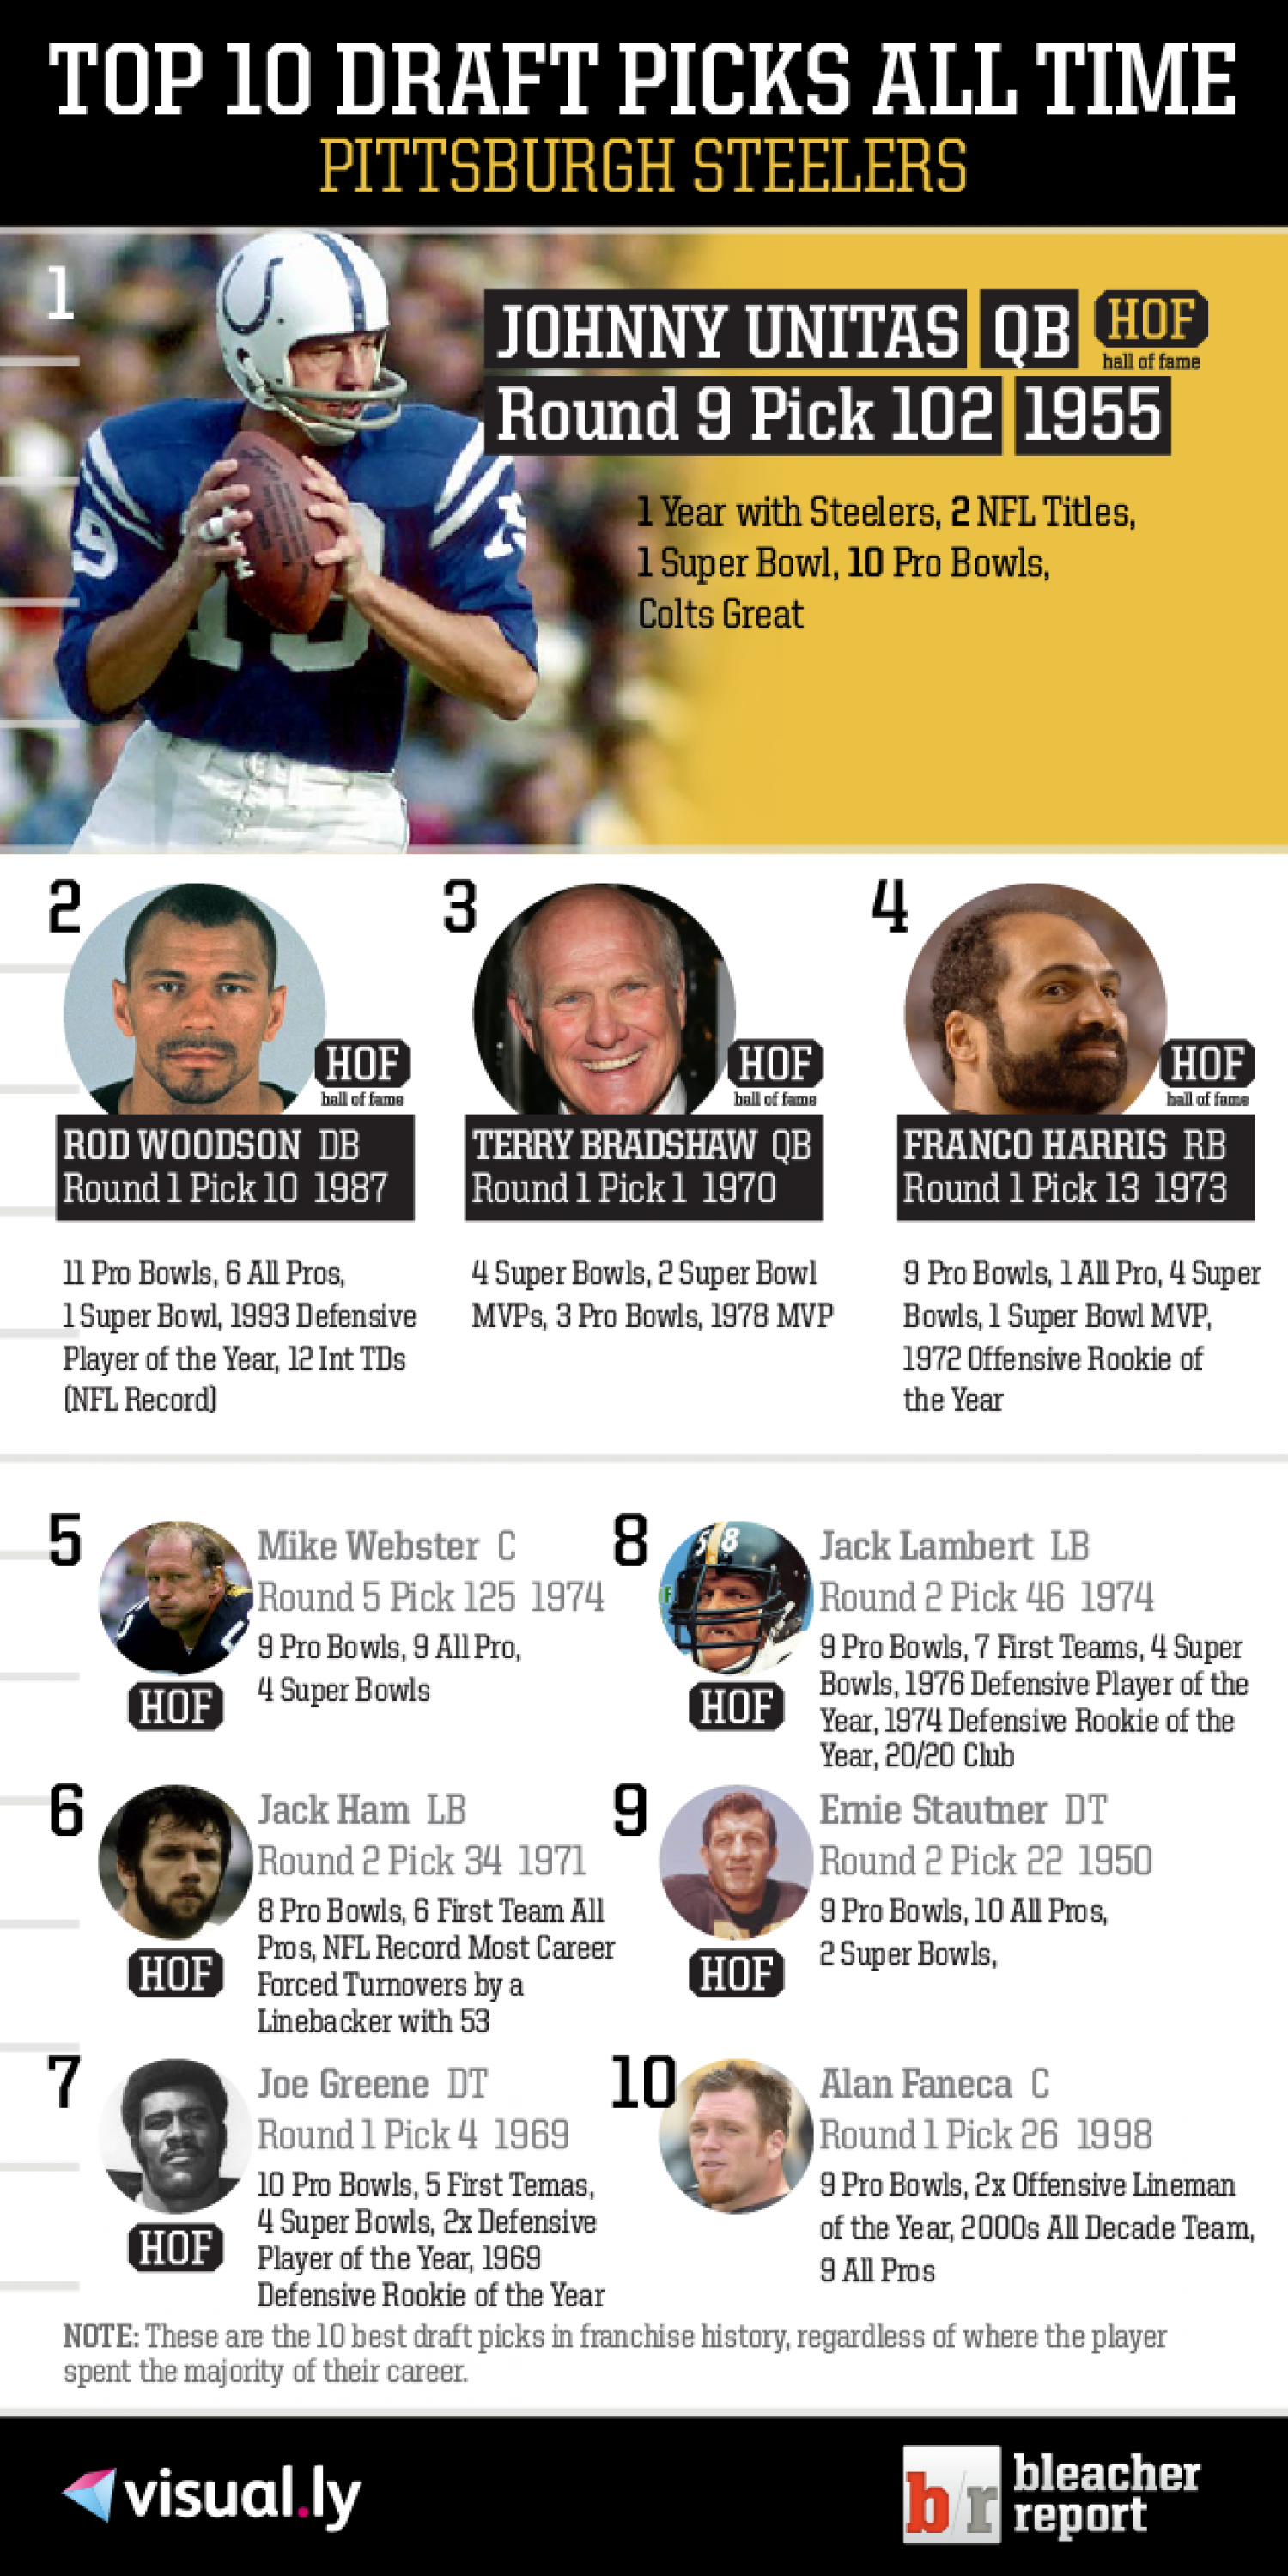 Top 10 Draft Picks of All Time: Pittsburgh Steelers Infographic